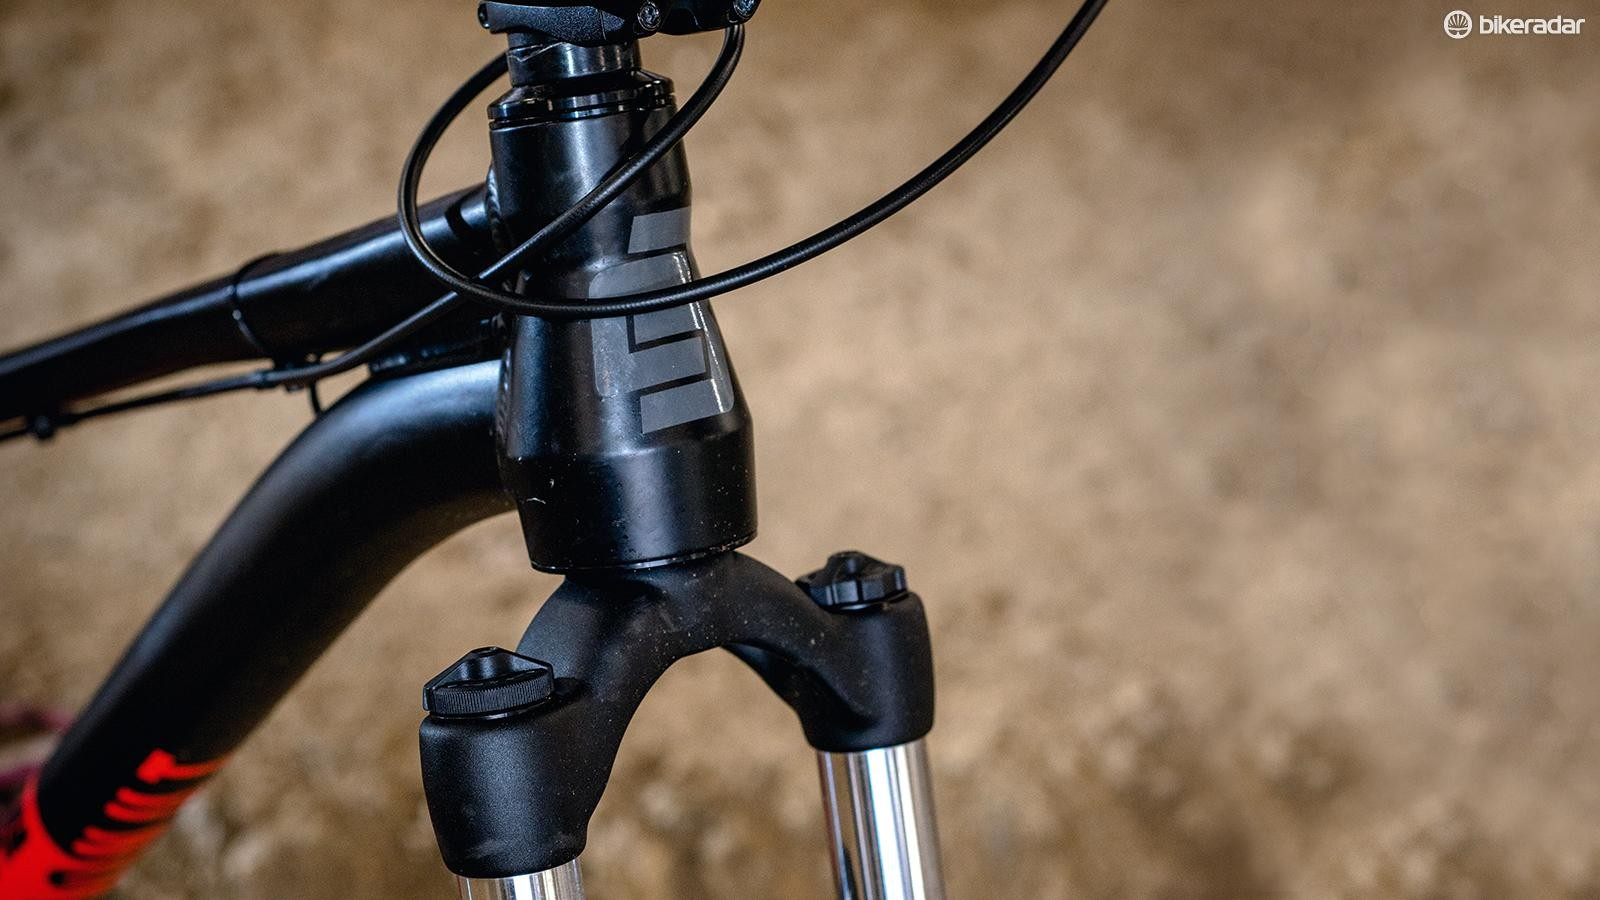 While the head tube is tapered, the fork steerer isn't, but it makes future upgrading easier